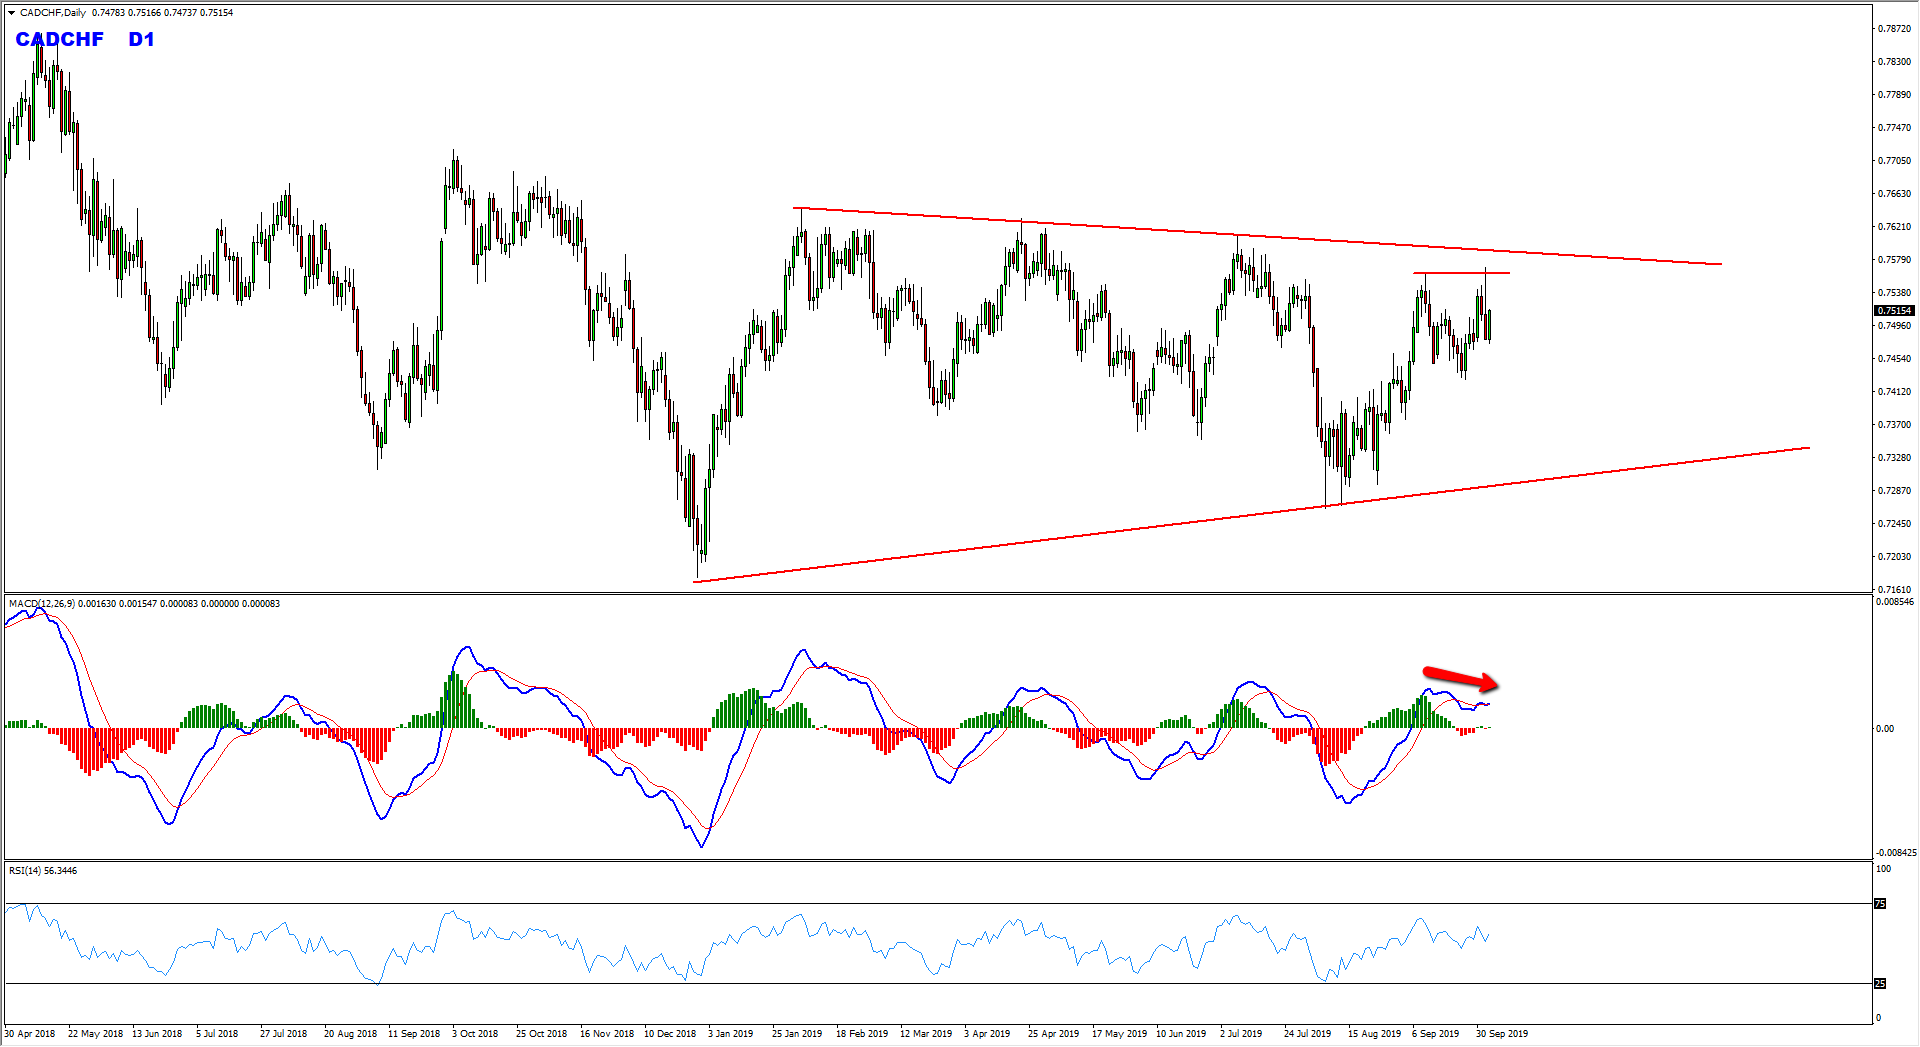 CADCHF Daily Range Provides Sell Opportunity